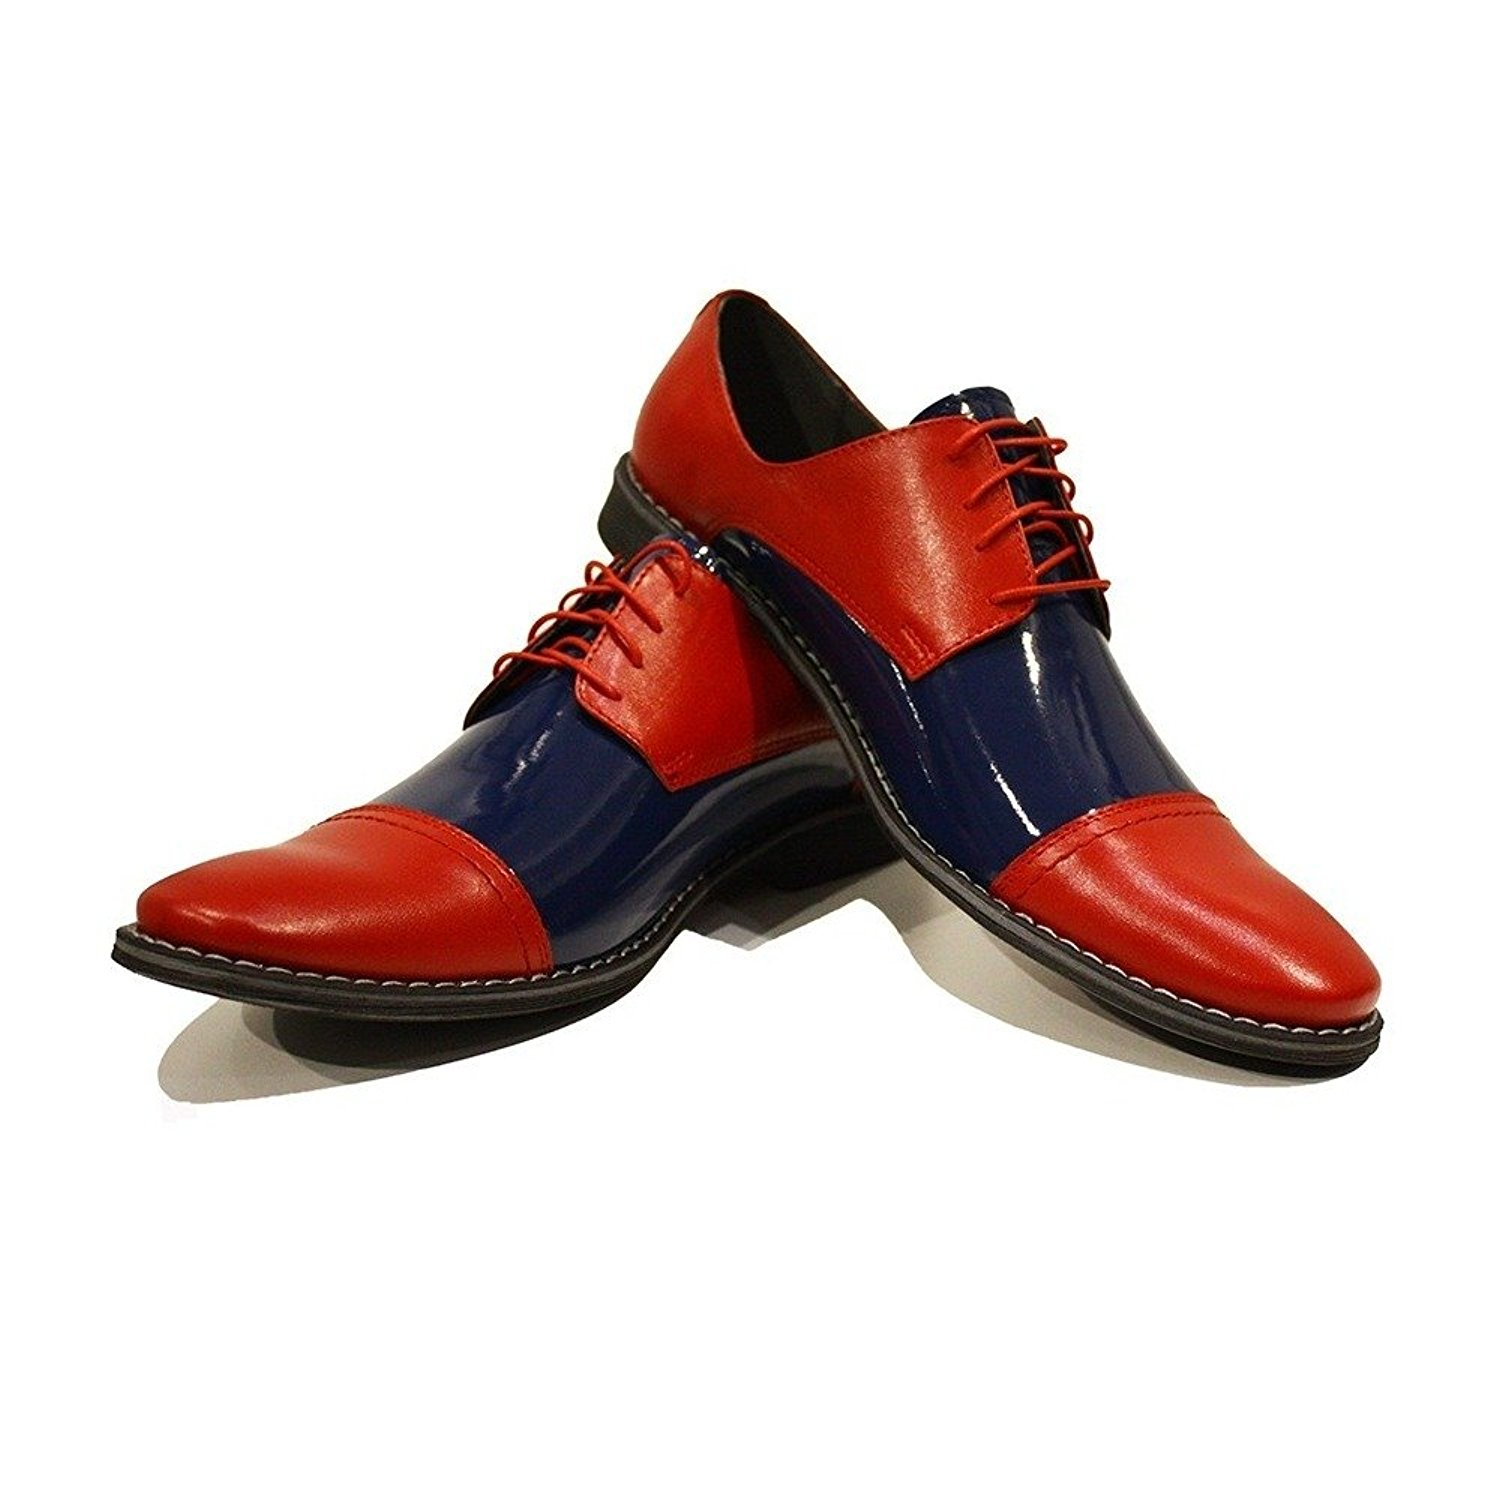 Modello Pietro - Handmade Italian Mens Red Oxfords Dress Shoes - Cowhide Patent Leather - Lace-up